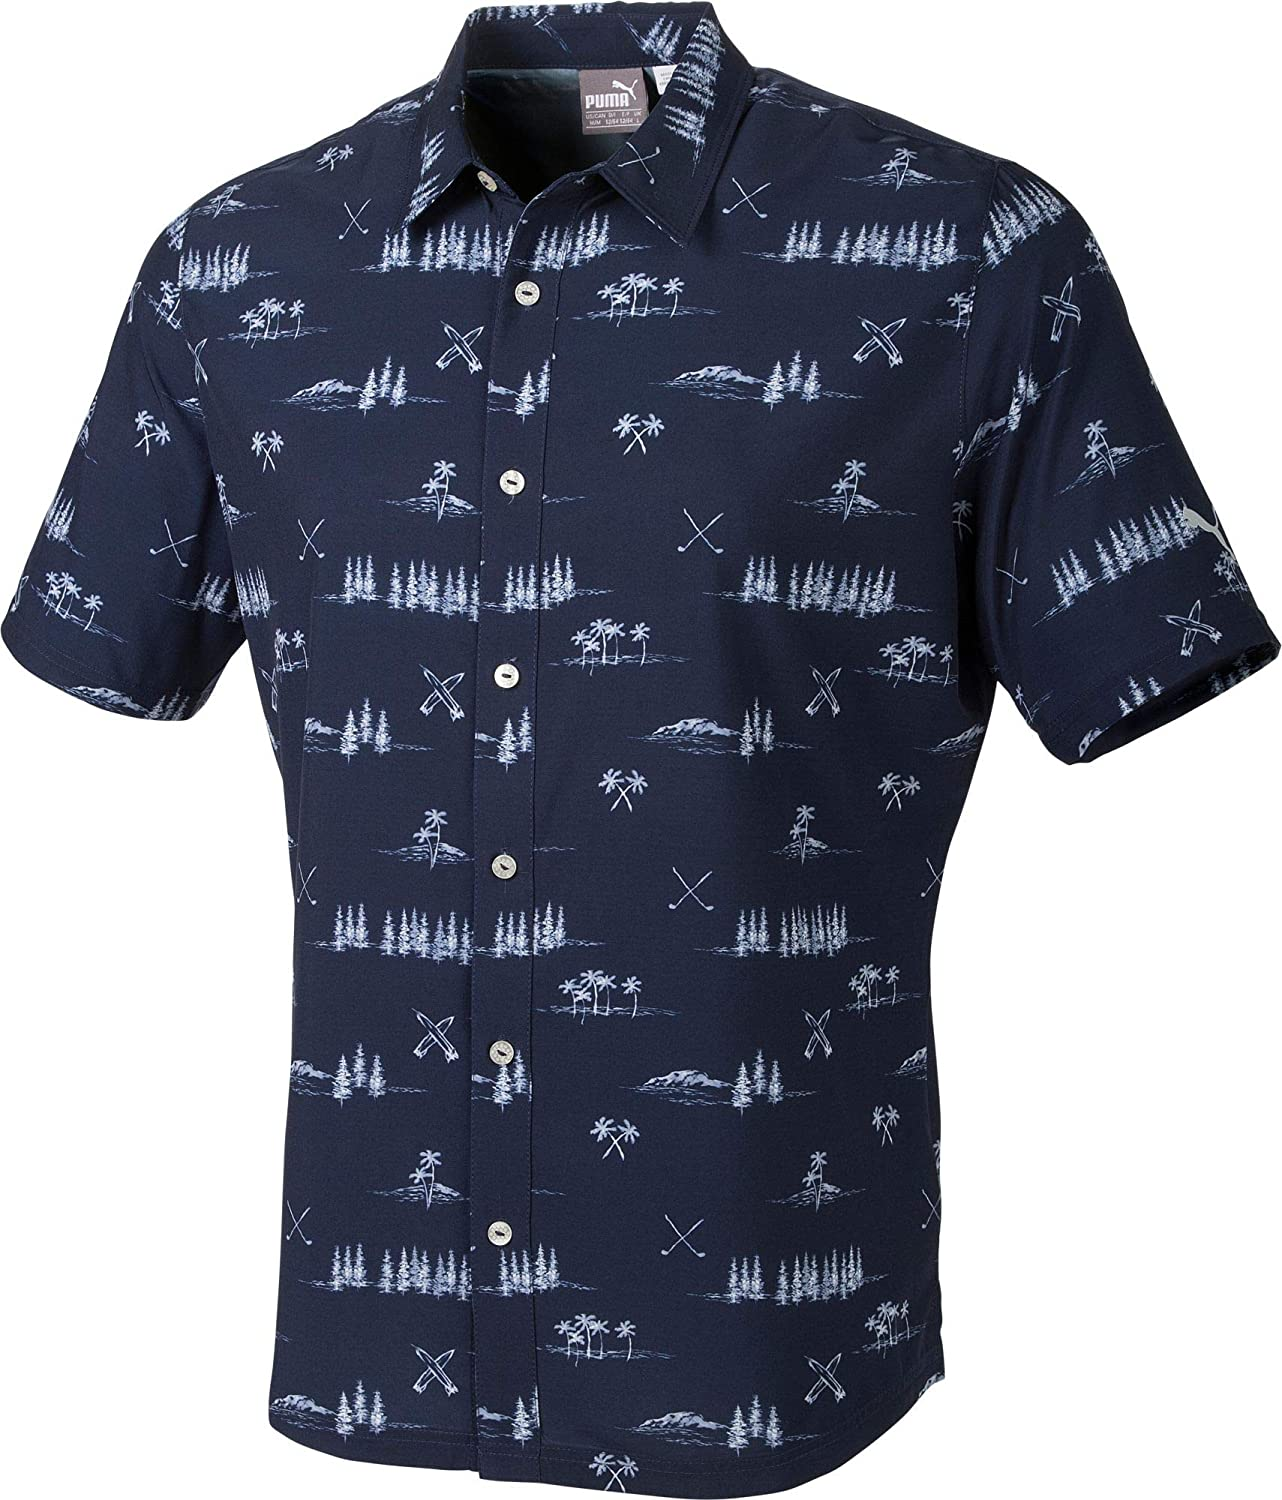 [プーマ] メンズ シャツ PUMA Men's Play Loose Paradise Button Do [並行輸入品] XL  B07MJPLH21